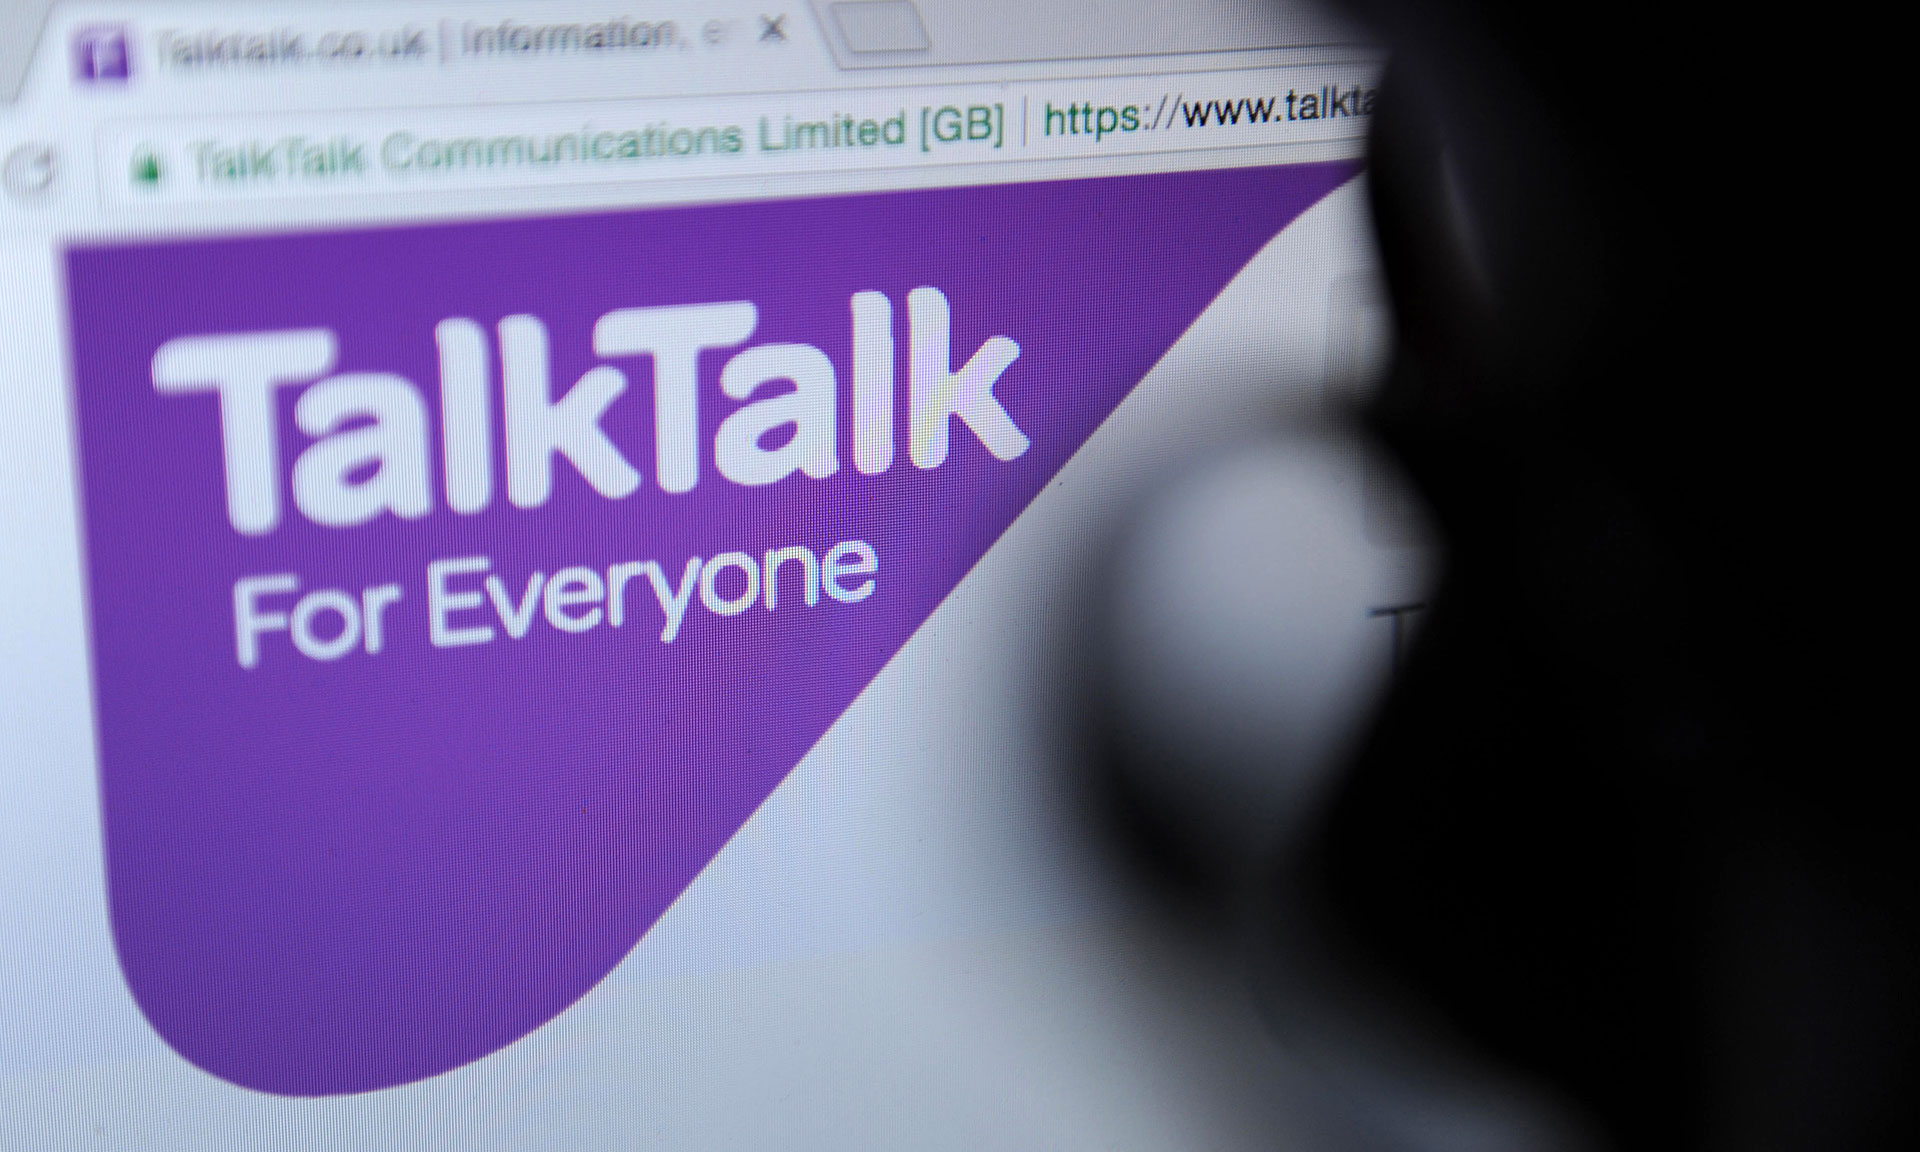 talktalk-press-release